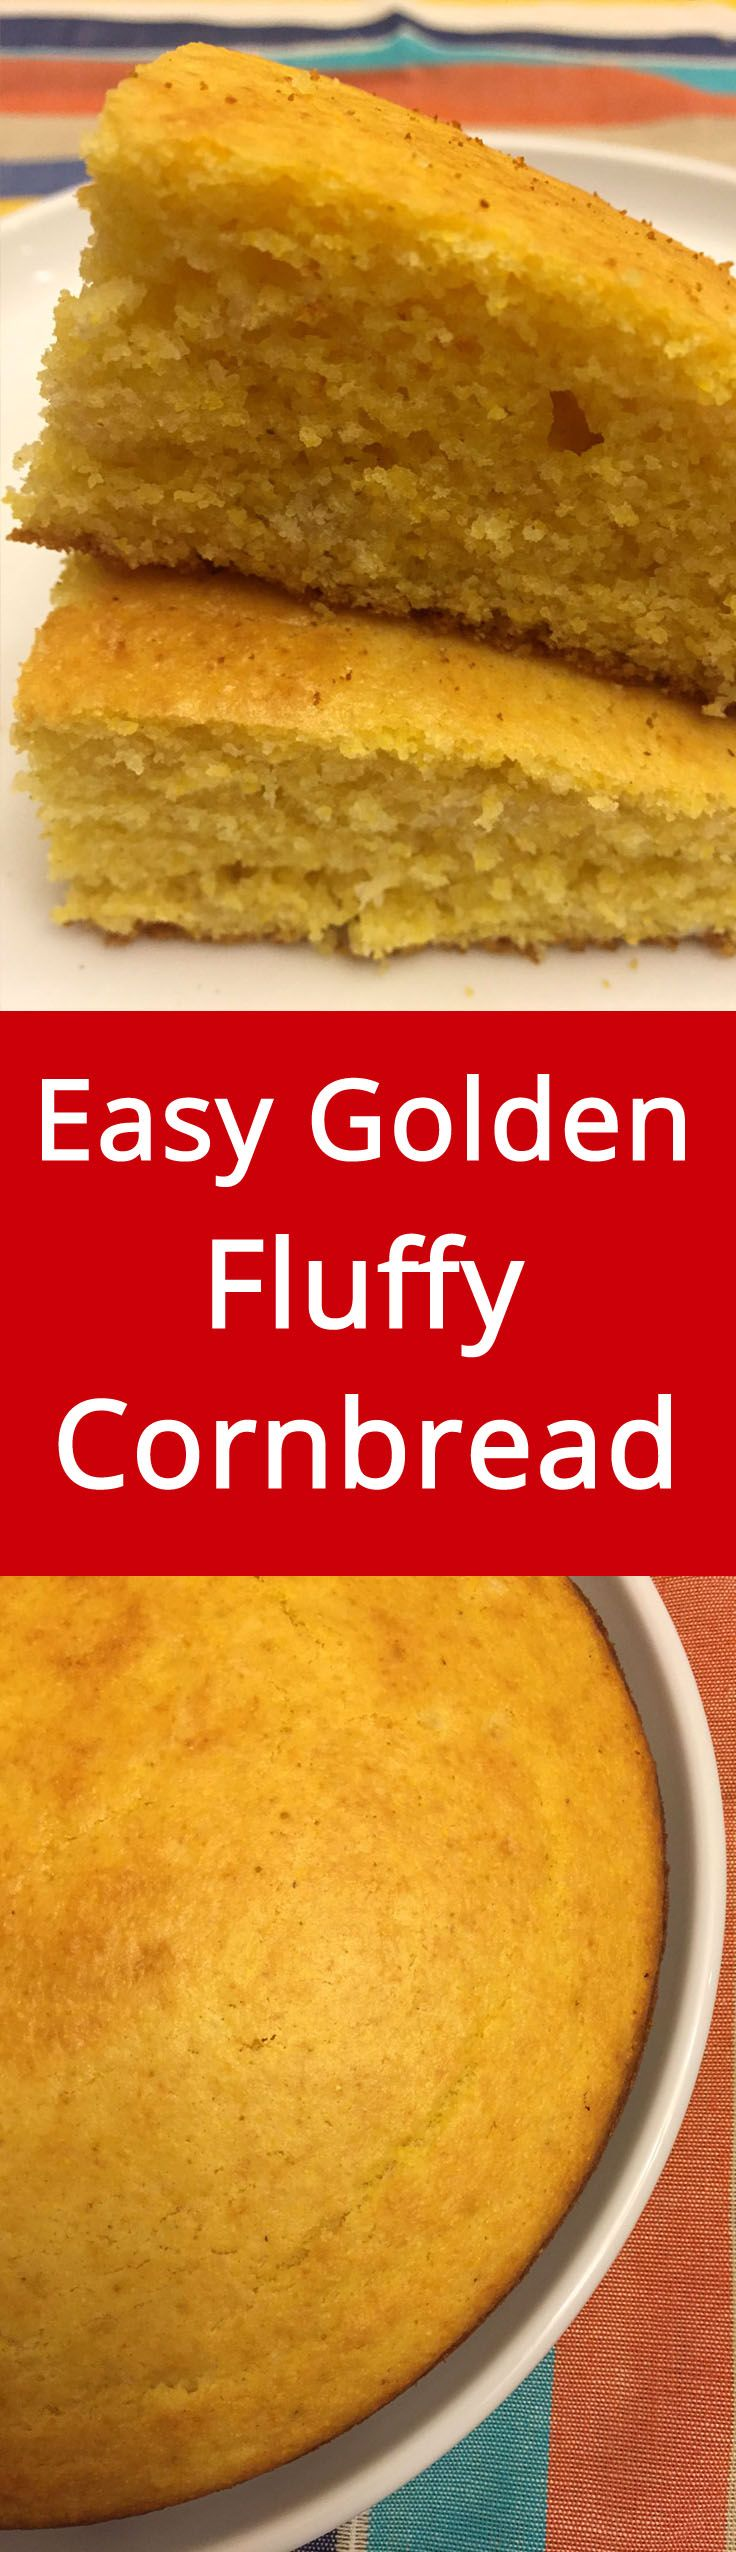 Easy Golden Fluffy Cornbread Recipe | MelanieCooks.com